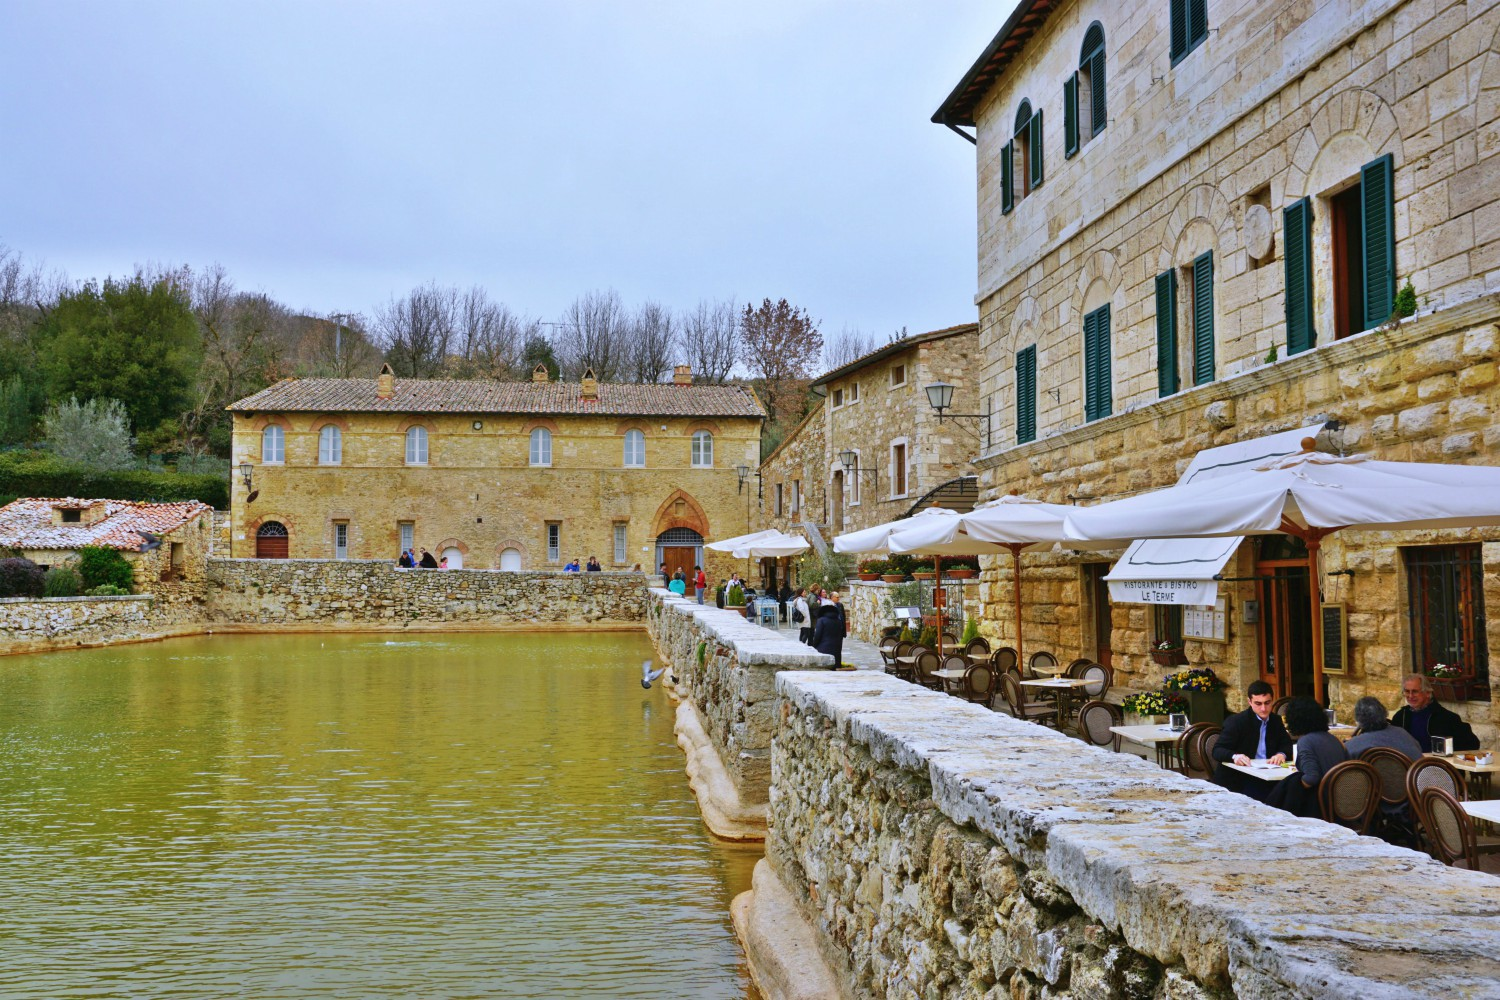 Bagno Vignoni Free Thermal Baths Bagno Vignoni Where The Main Piazza Is A Hot Water Pool